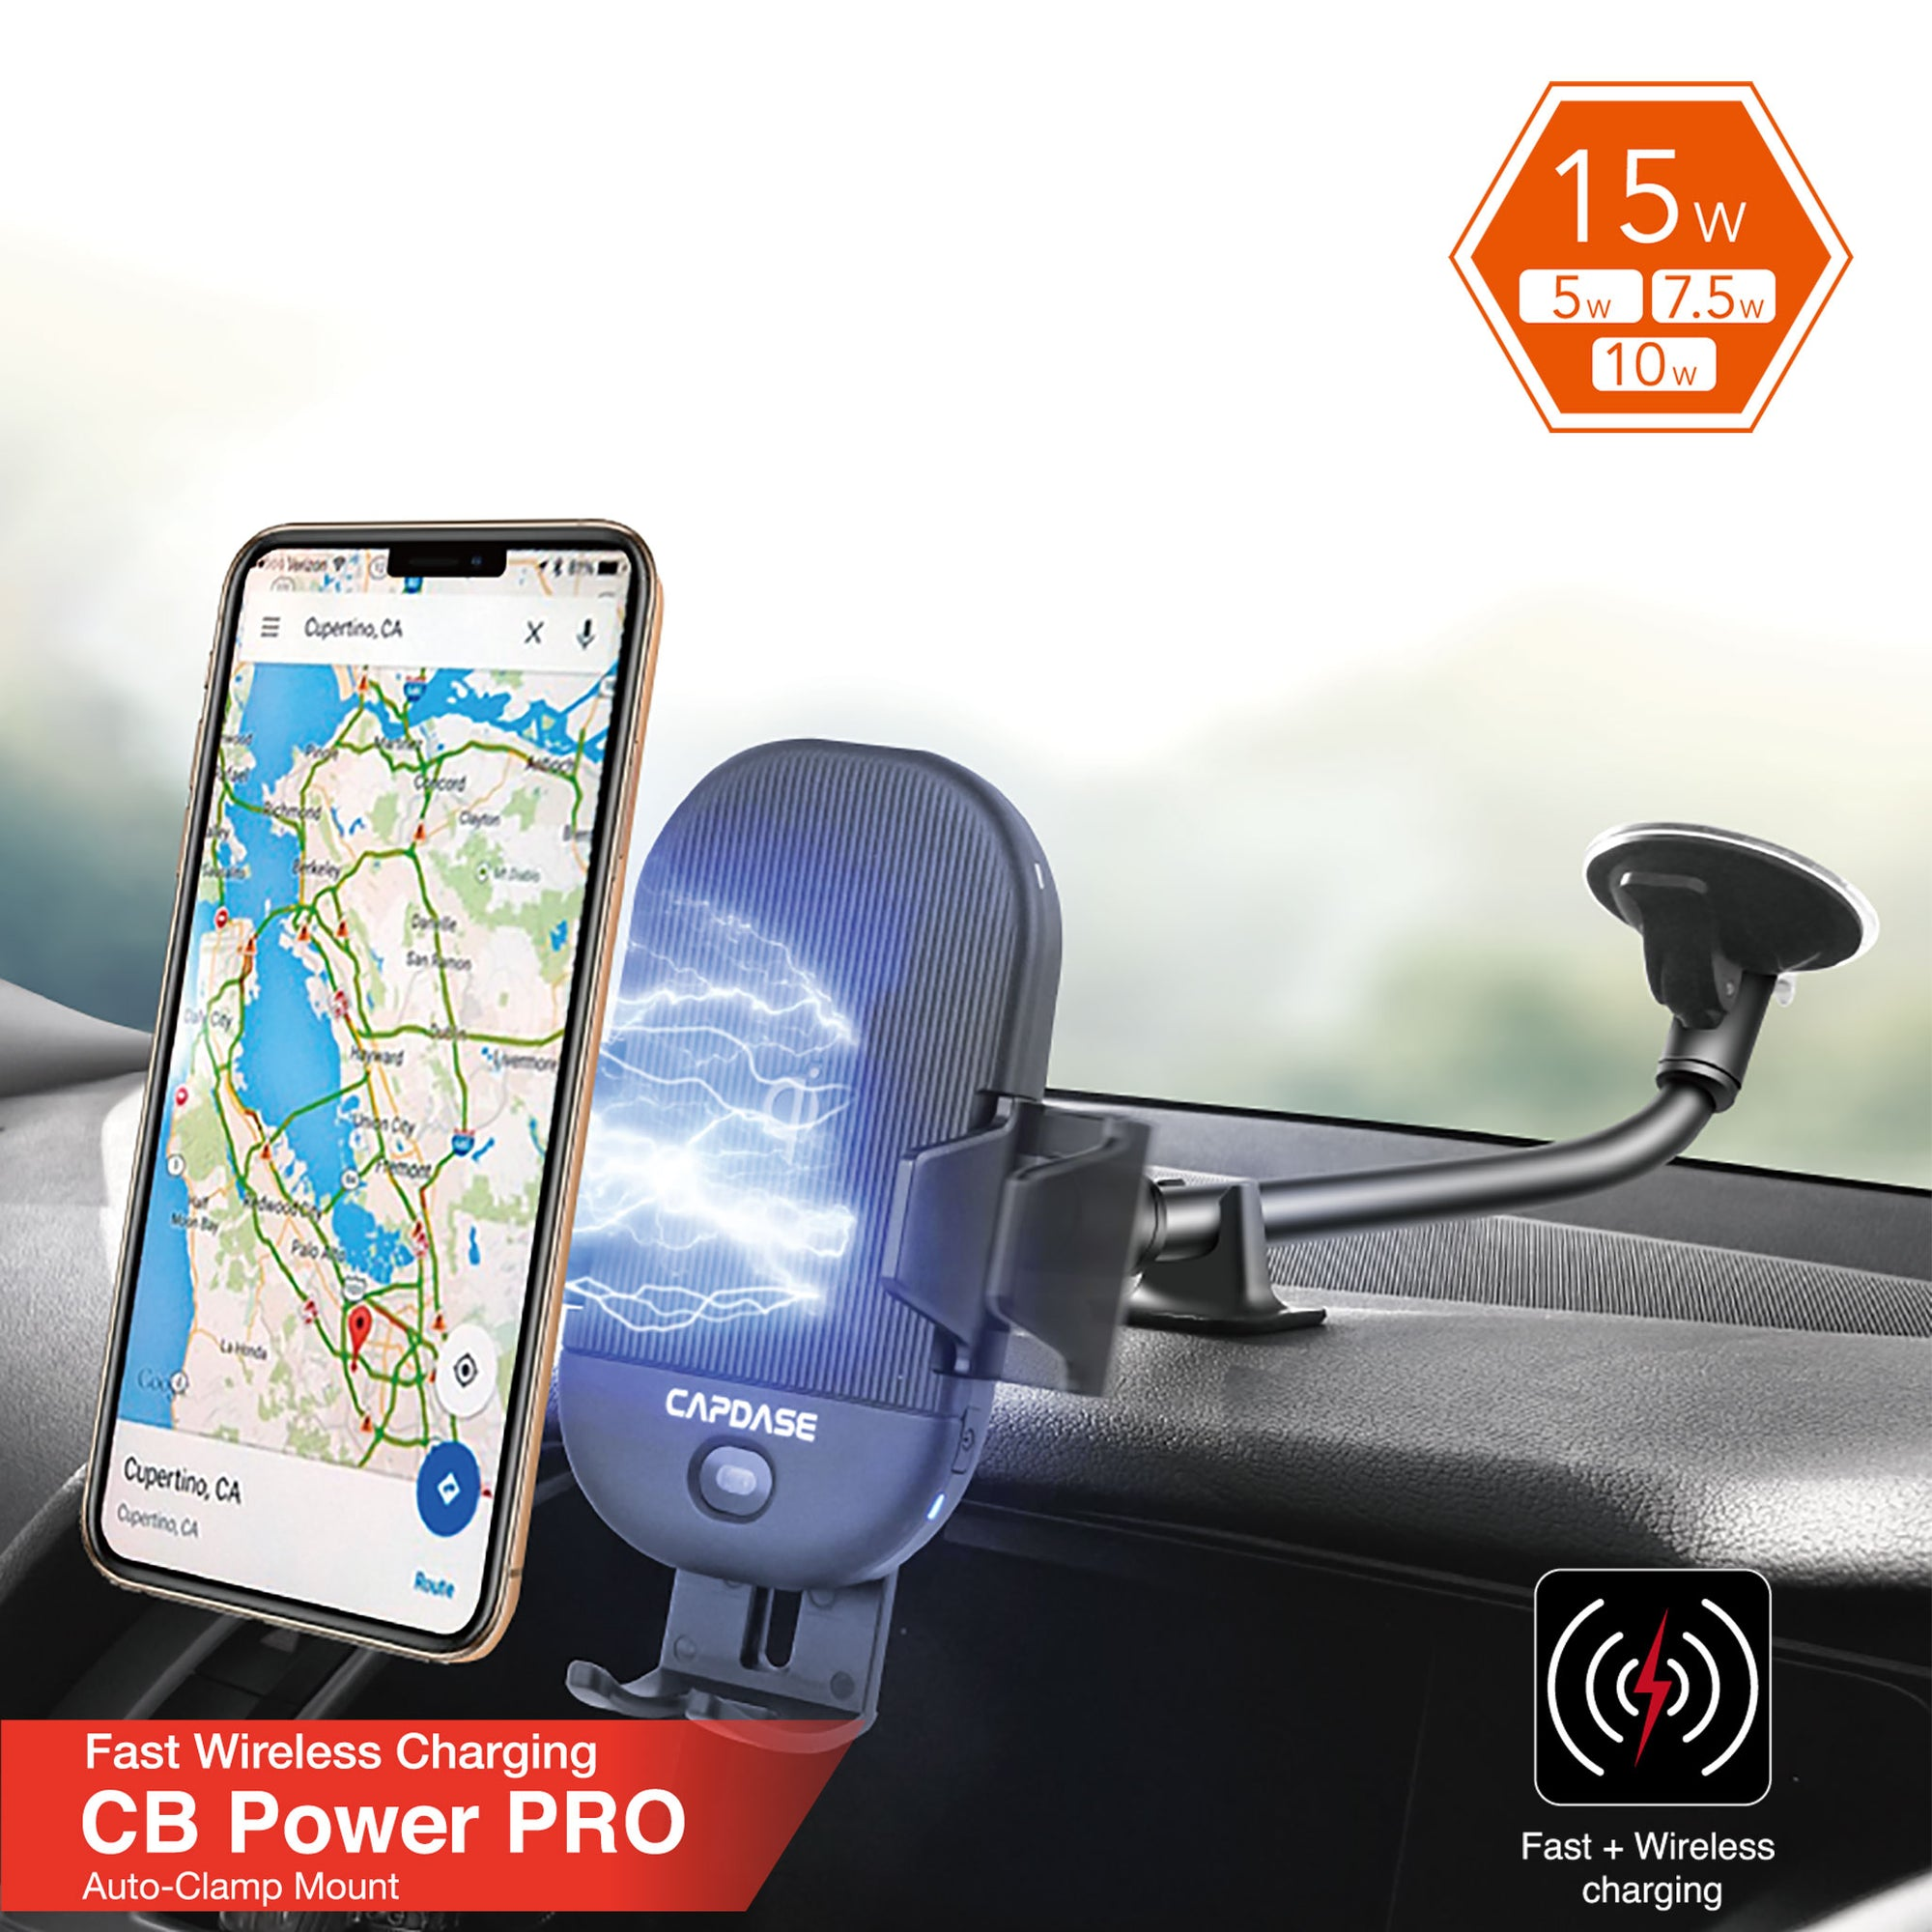 CB Power Pro Fast Wireless Charging Auto-Clamp Car Mount Gooseneck Arm 300mm